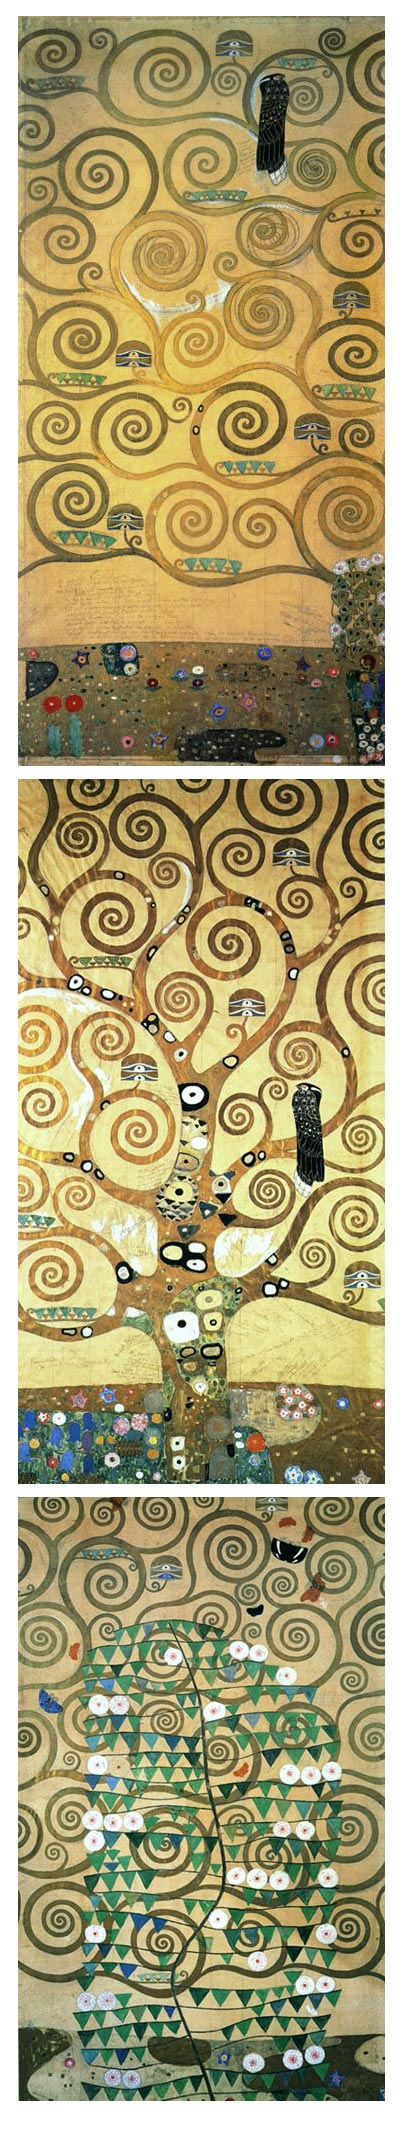 Густав Климт (Gustav Klimt). Древо жизни (The Tree of Life)